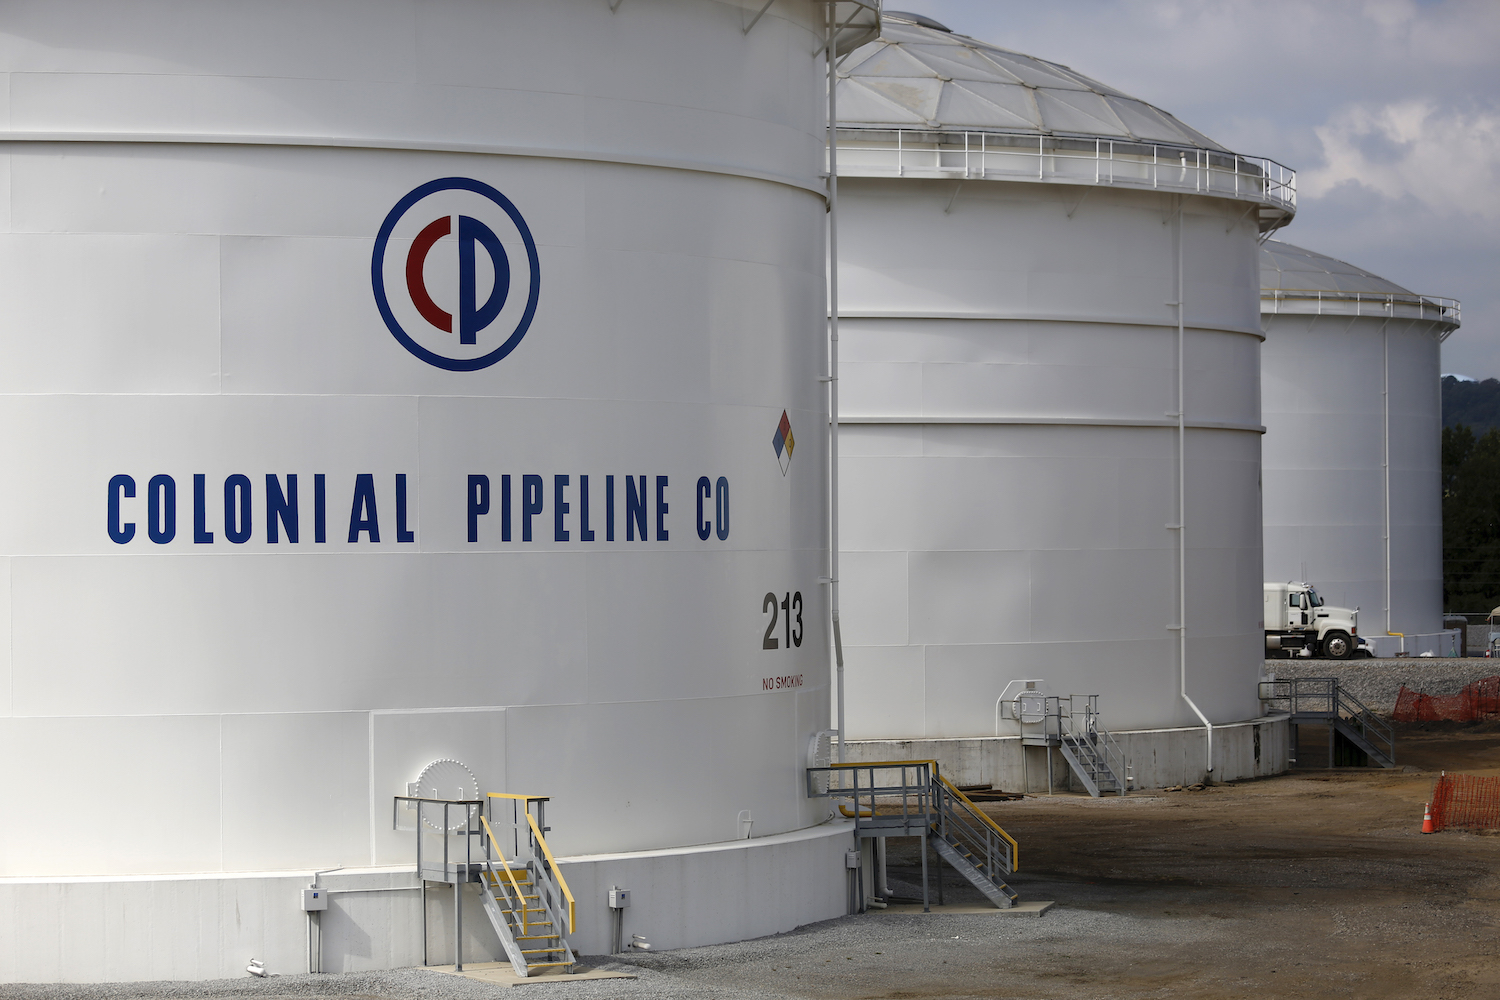 Pipeline Hackers Say They're 'Apolitical,' Will Choose Targets More Carefully Next Time